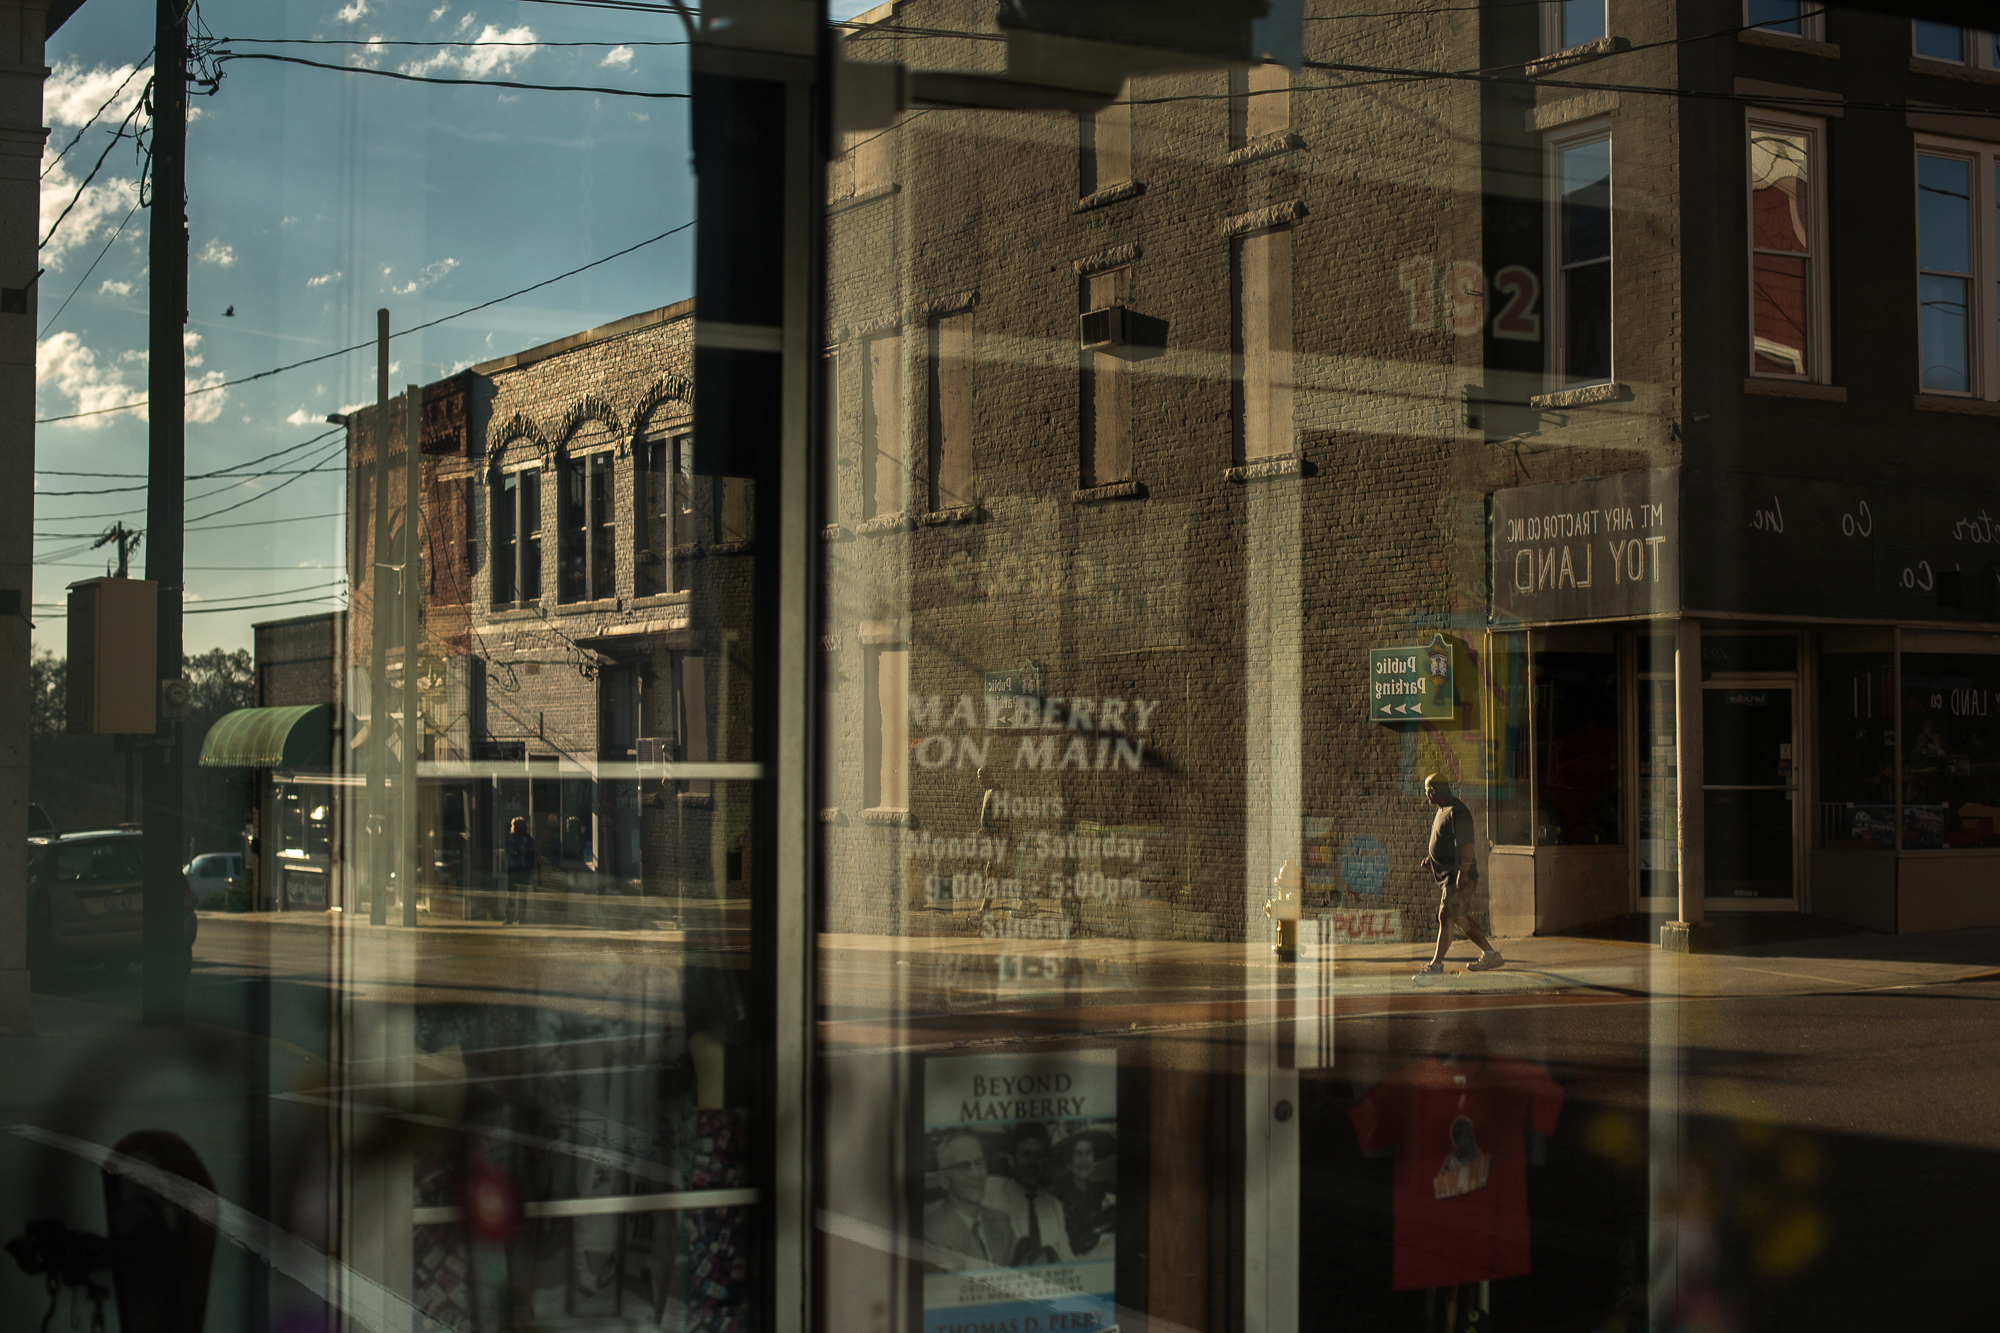 A street scene reflected in a storefront window in downtown Mount Airy, N.C., also known as Mayberry in the Andy Griffith show. Mount Airy is a cultural center in Surry County.